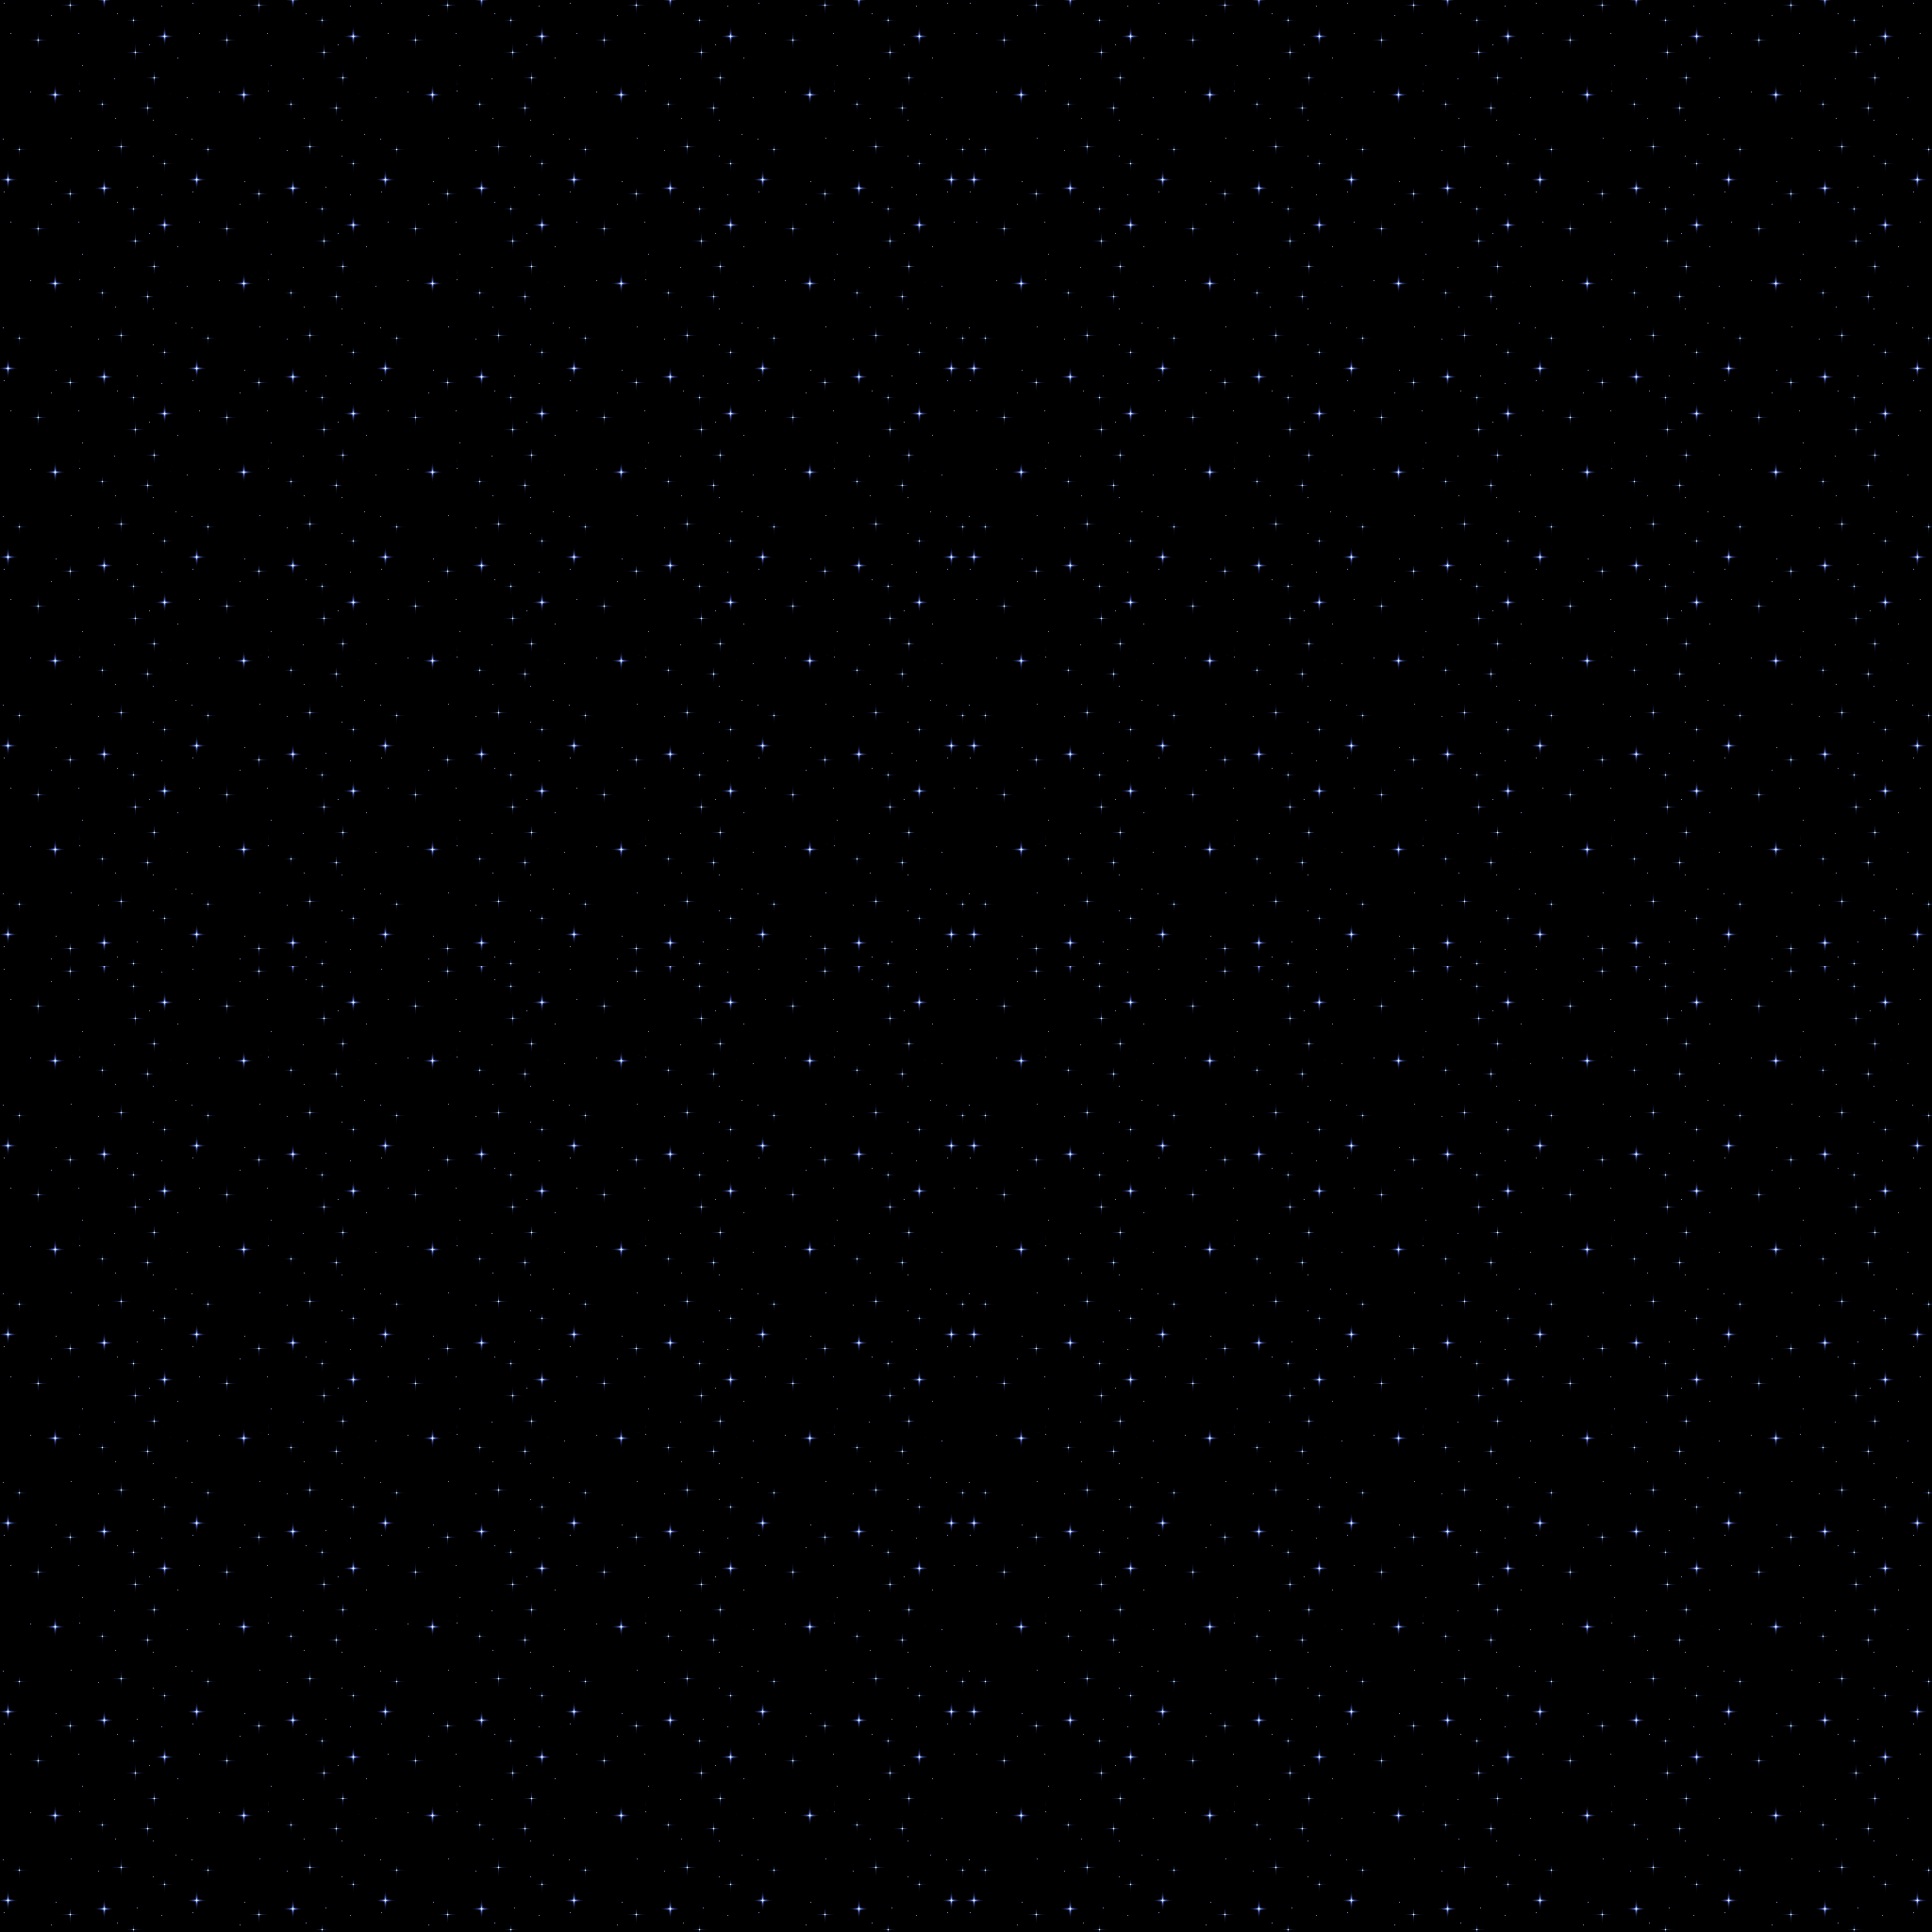 src/resources/texture_background_simple.png